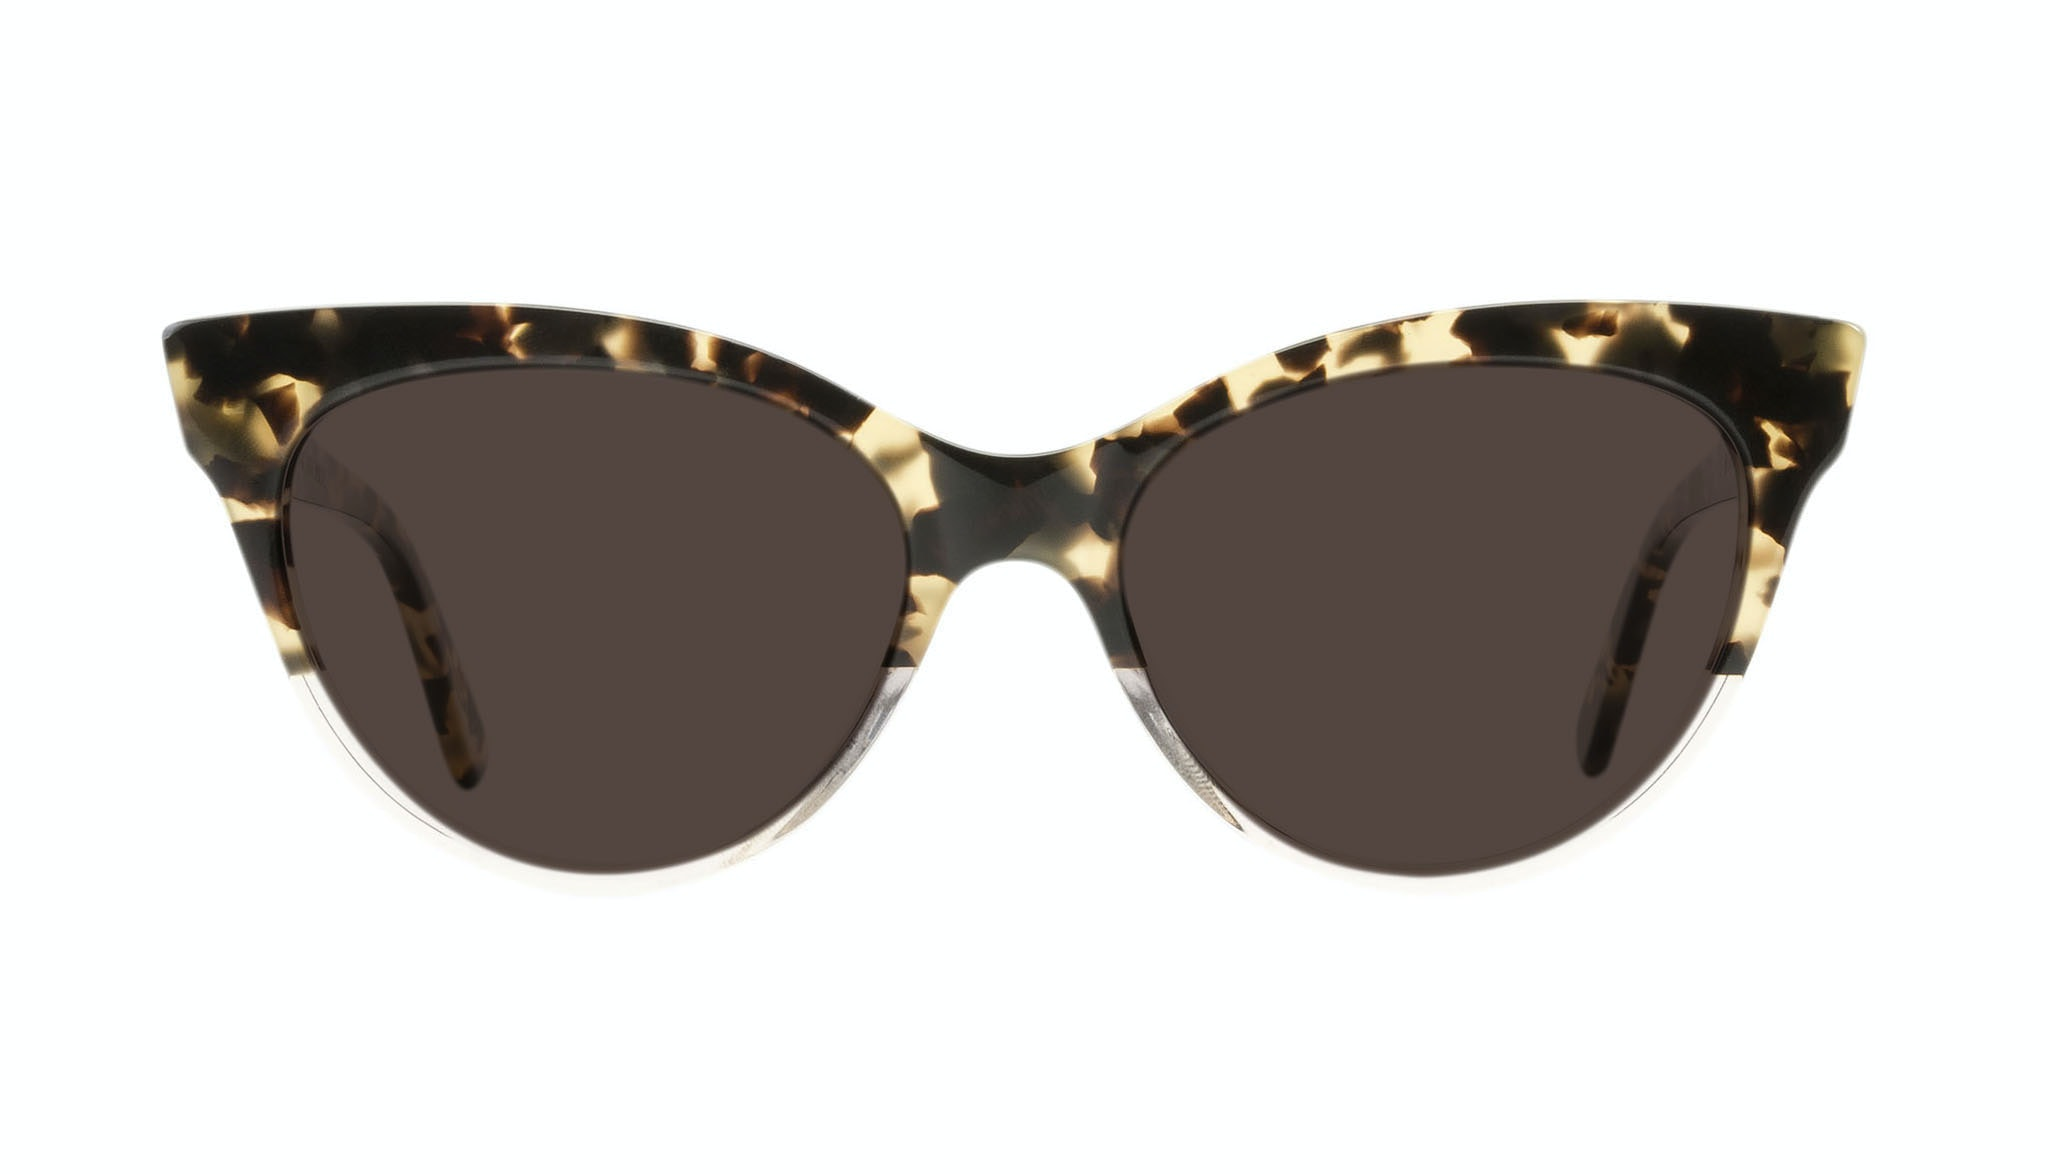 Affordable Fashion Glasses Cat Eye Sunglasses Women SkunkBoy Champagne Tort